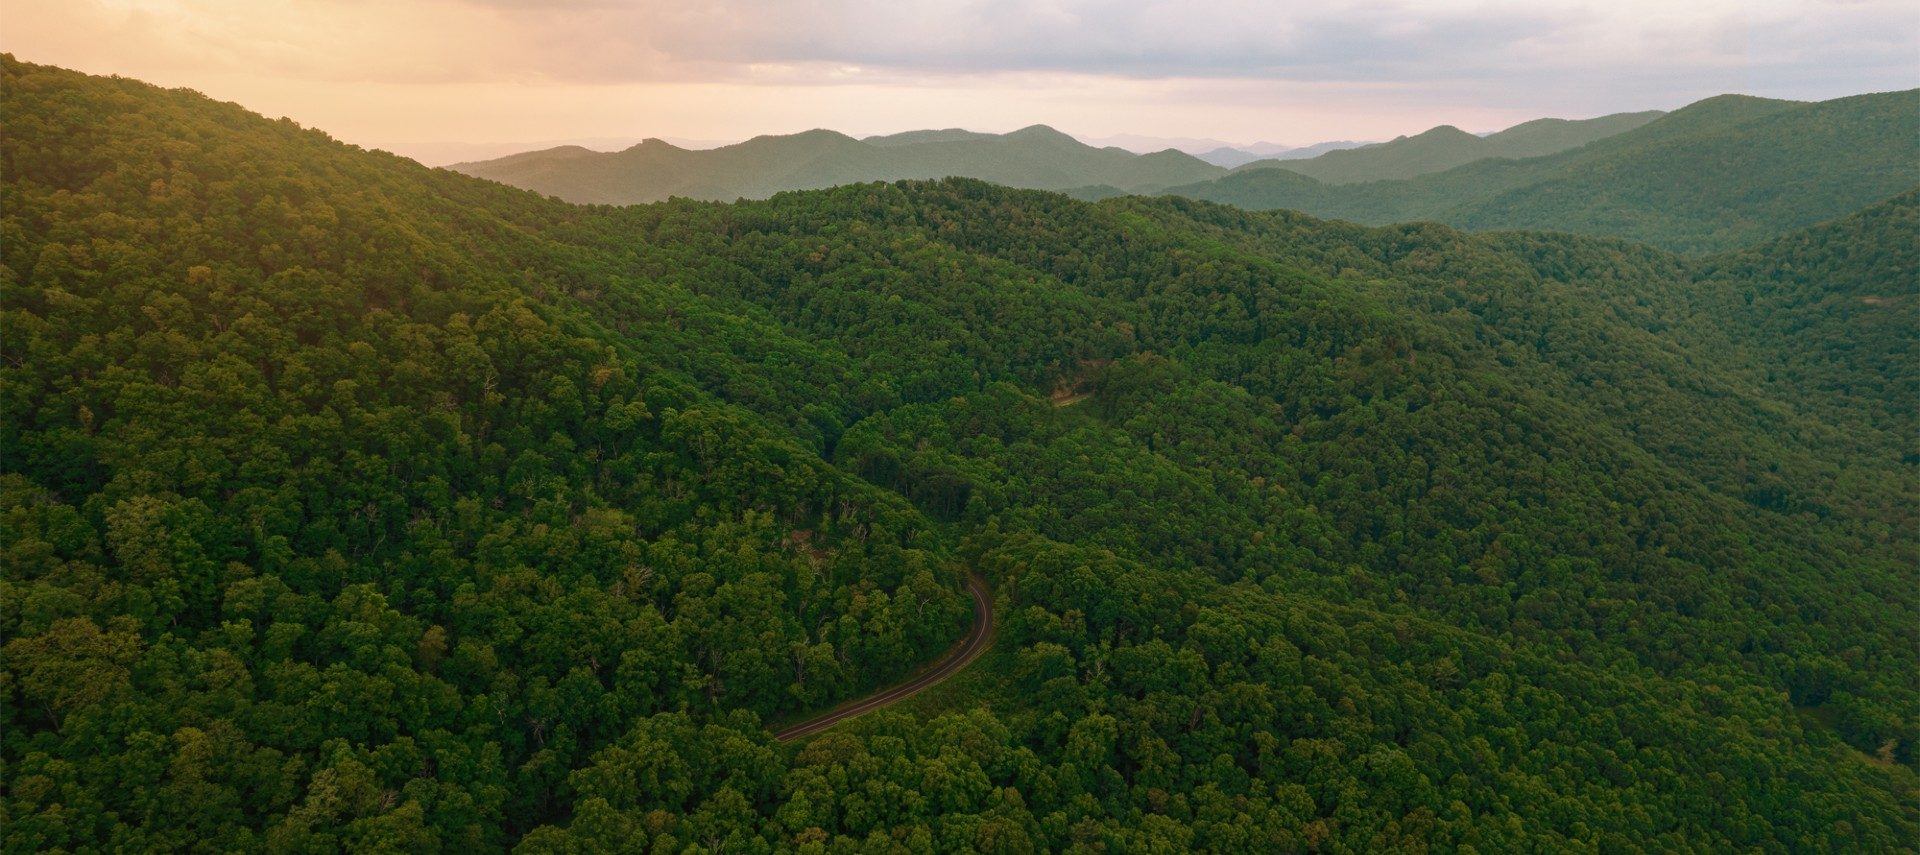 Overhead view of a lush green mountainous area with a single road snaking through the trees